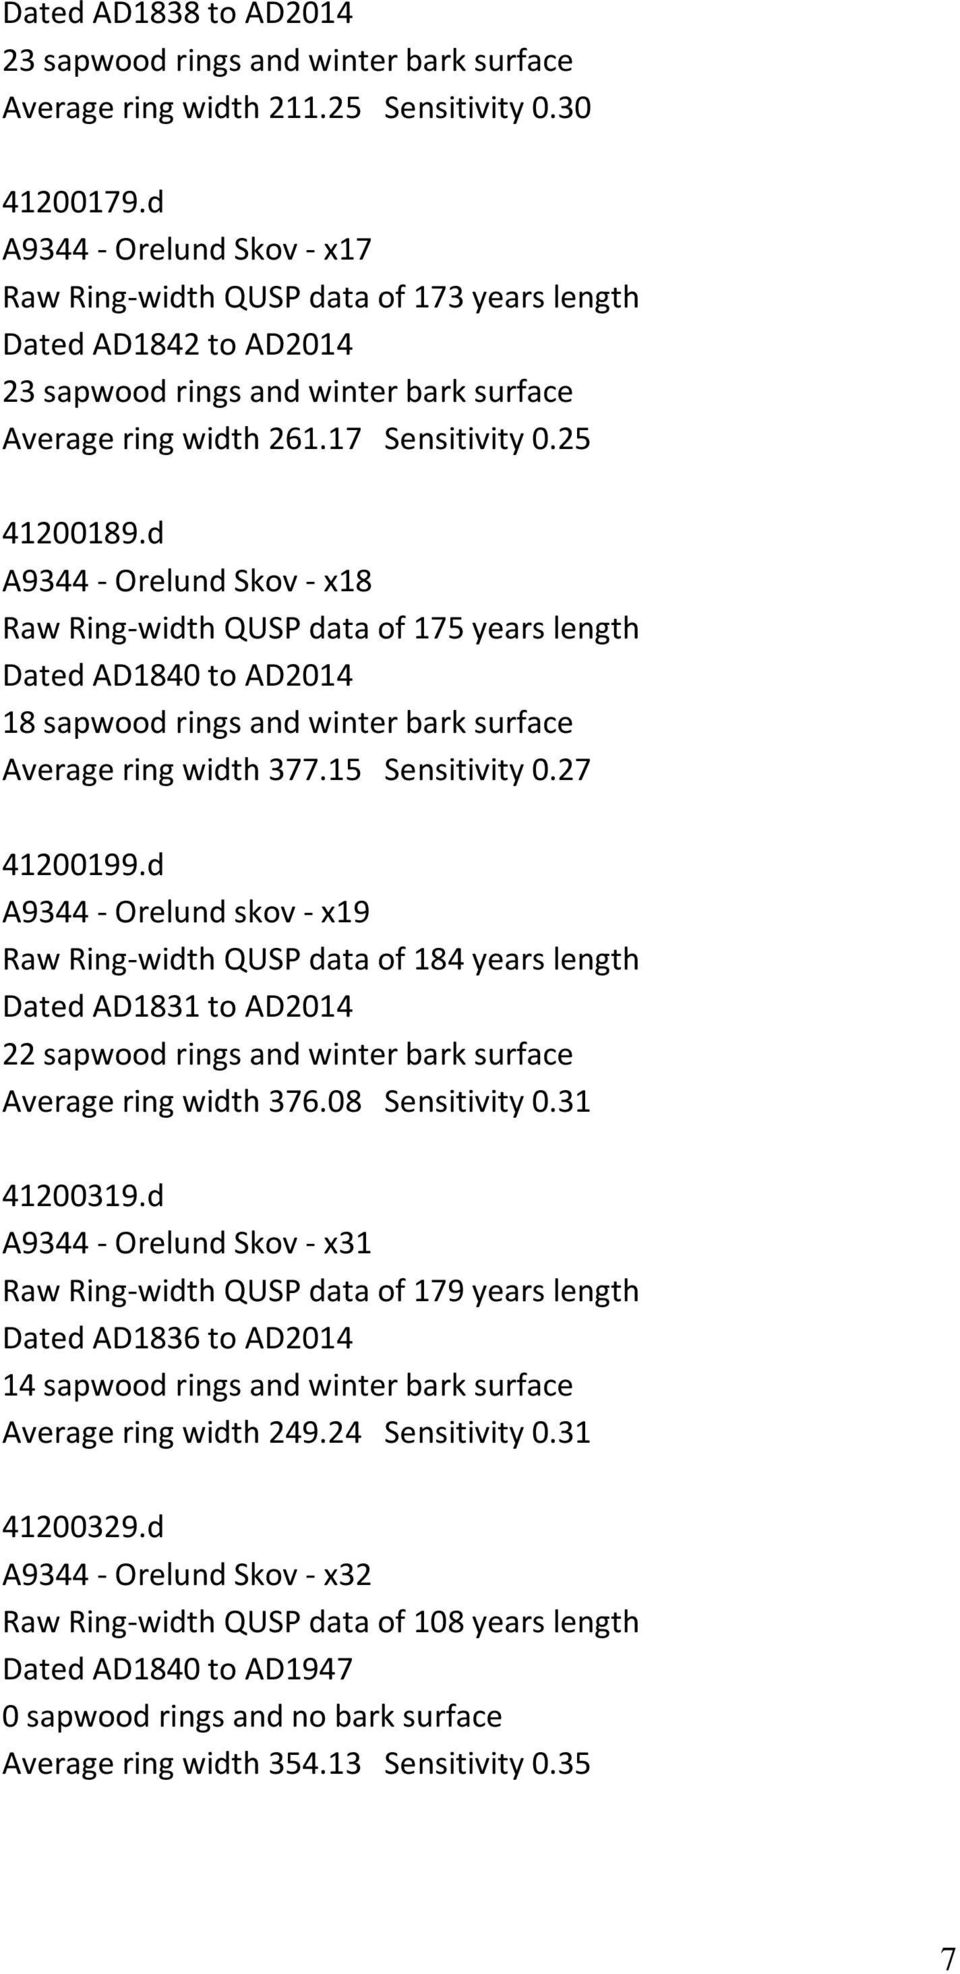 d A9344 - Orelund Skov - x18 Raw Ring-width QUSP data of 175 years length Dated AD1840 to AD2014 18 sapwood rings and winter bark surface Average ring width 377.15 Sensitivity 0.27 41200199.